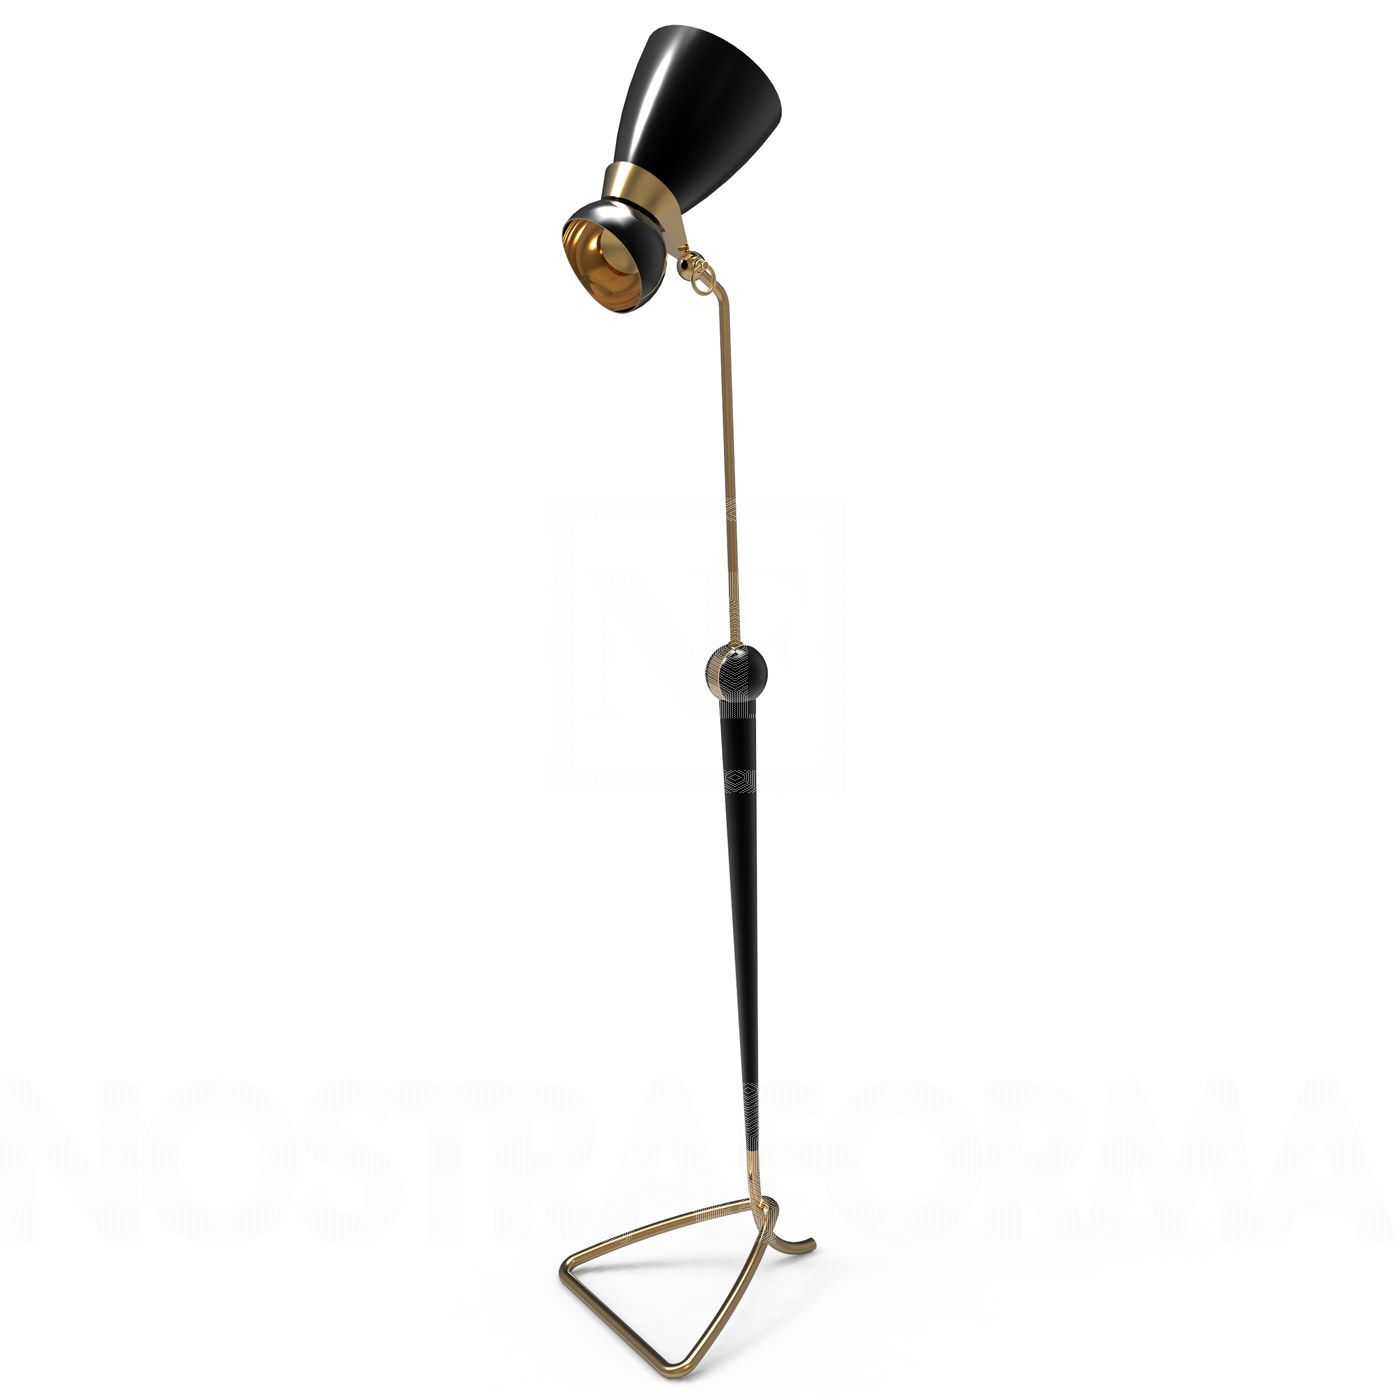 Ready To Get Your Dream Home With This Mid-Century Lamps 5 mid-century lamps Ready To Get Your Dream Home With This Mid-Century Lamps? Ready To Get Your Dream Home With This Mid Century Lamps 5